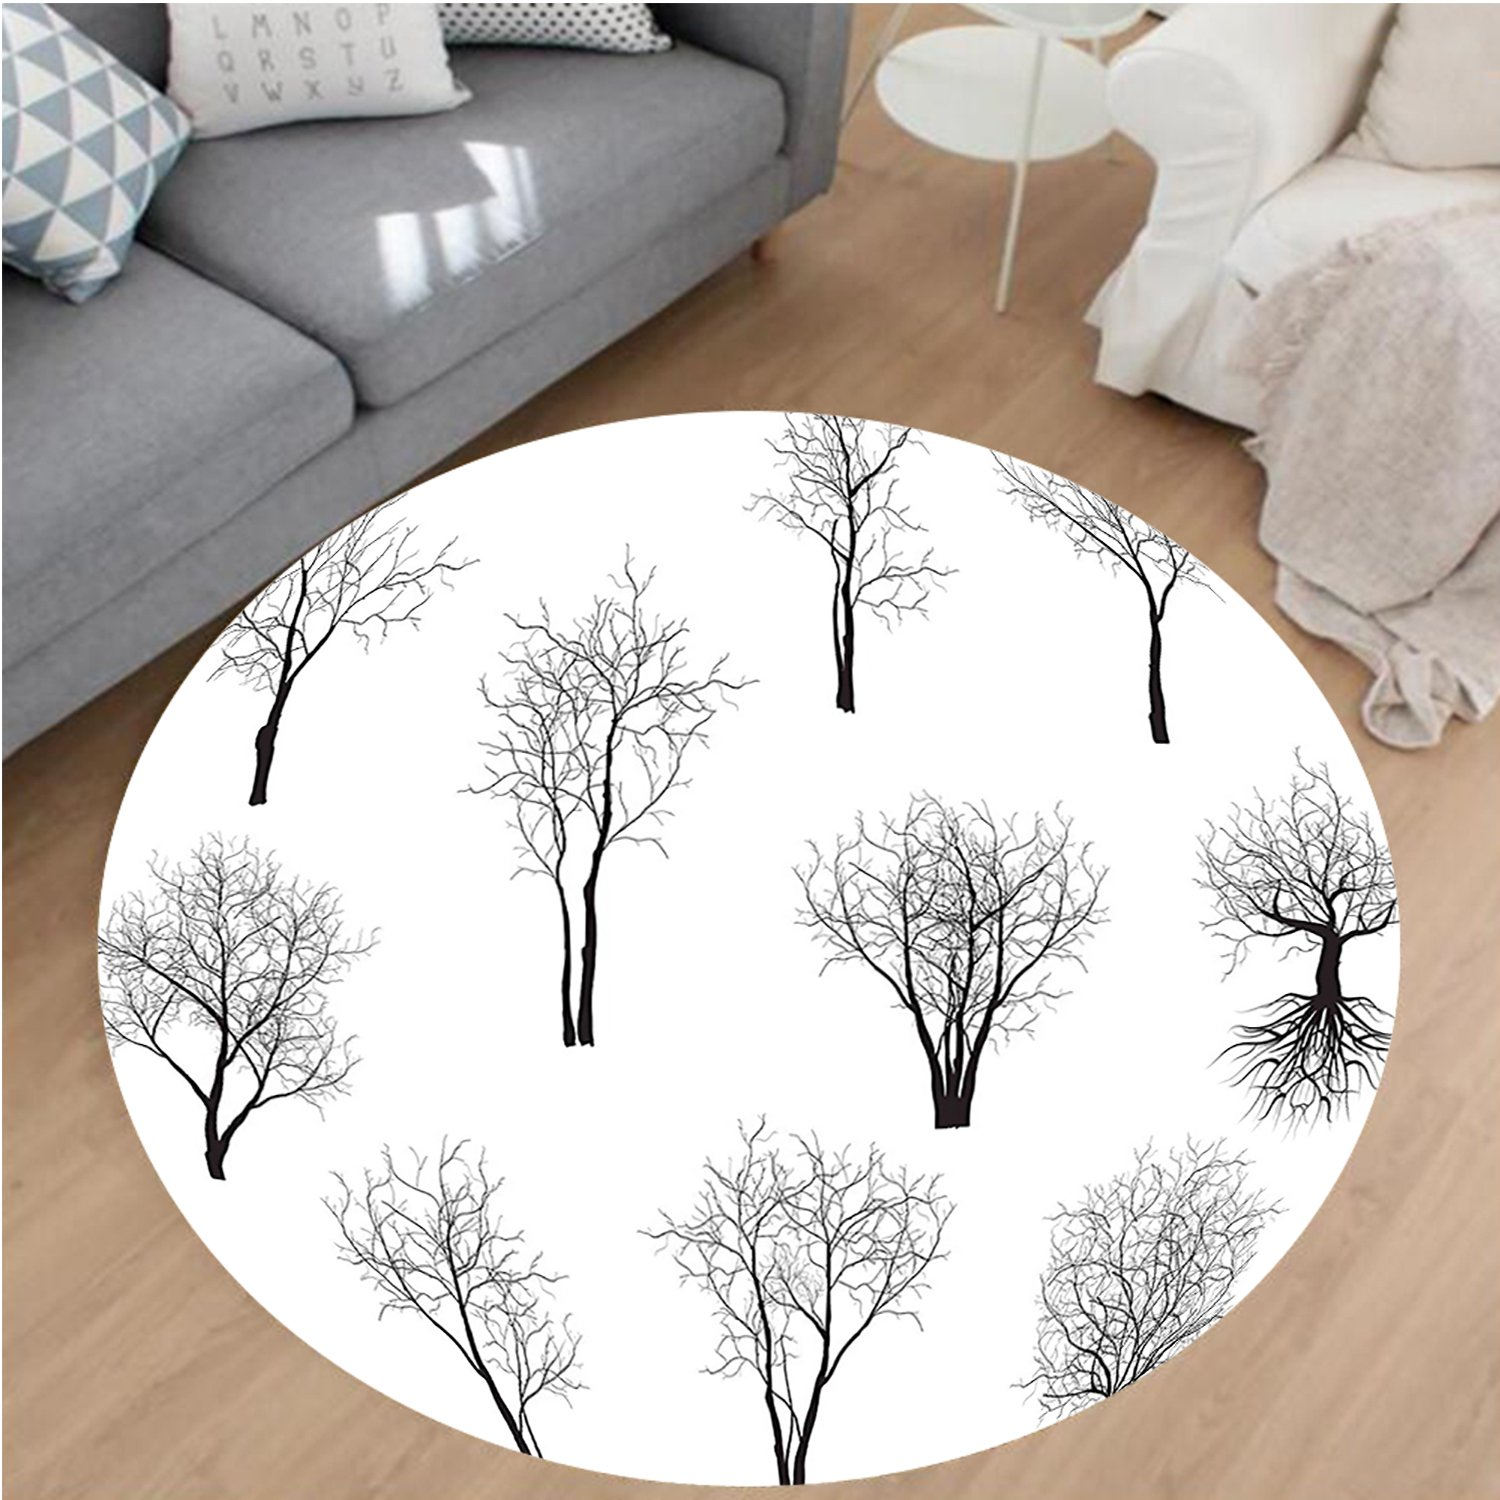 Nalahome Modern Flannel Microfiber Non-Slip Machine Washable Round Area Rug-t Decor Spooky Horror Movie Themed Branches Forest Trees Nature Art Print Black and White area rugs Home Decor-Round 75''